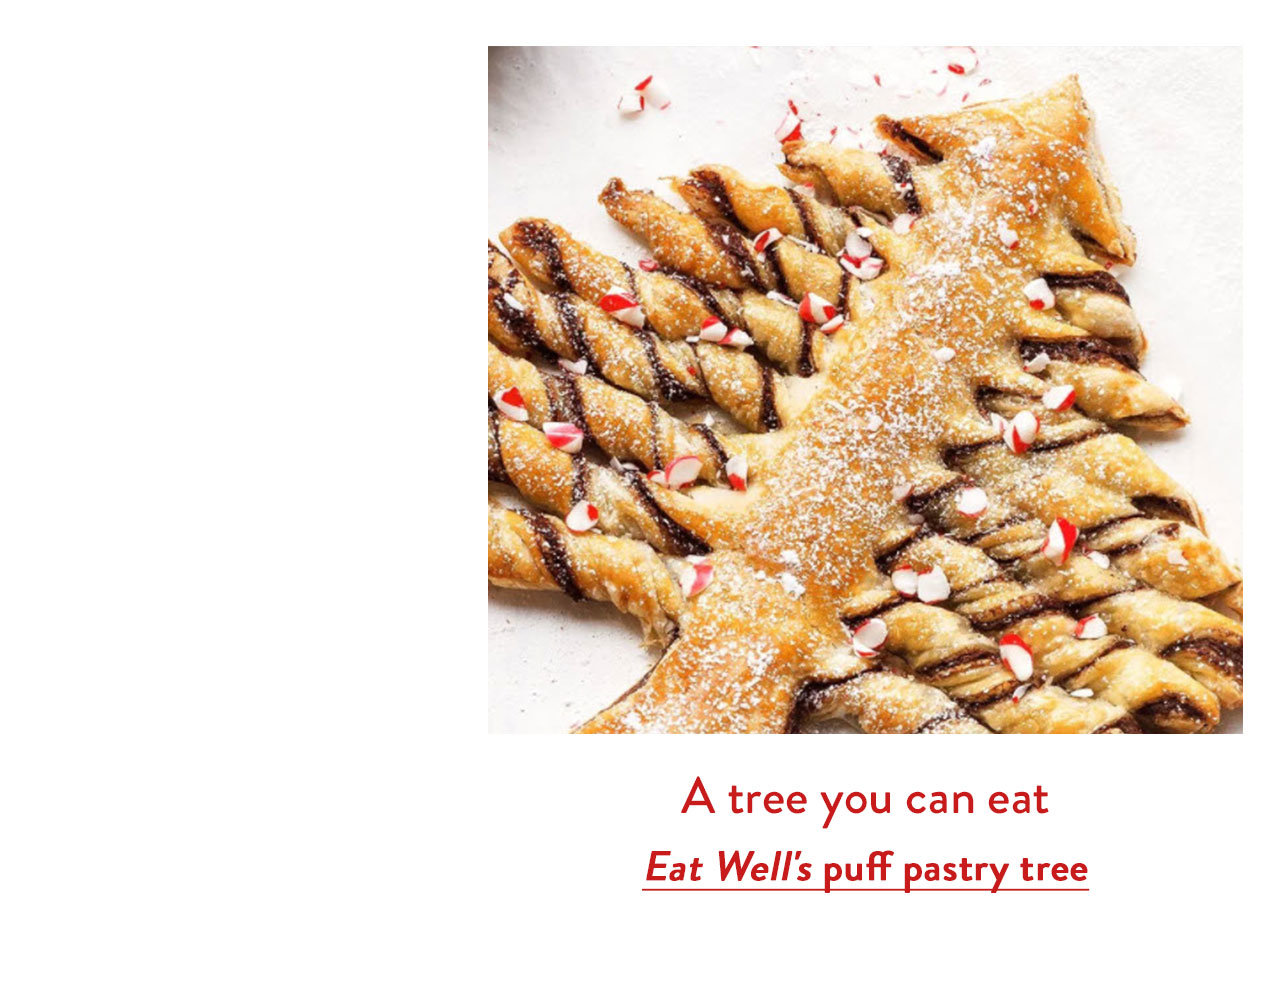 Eat Well's puff pastry tree